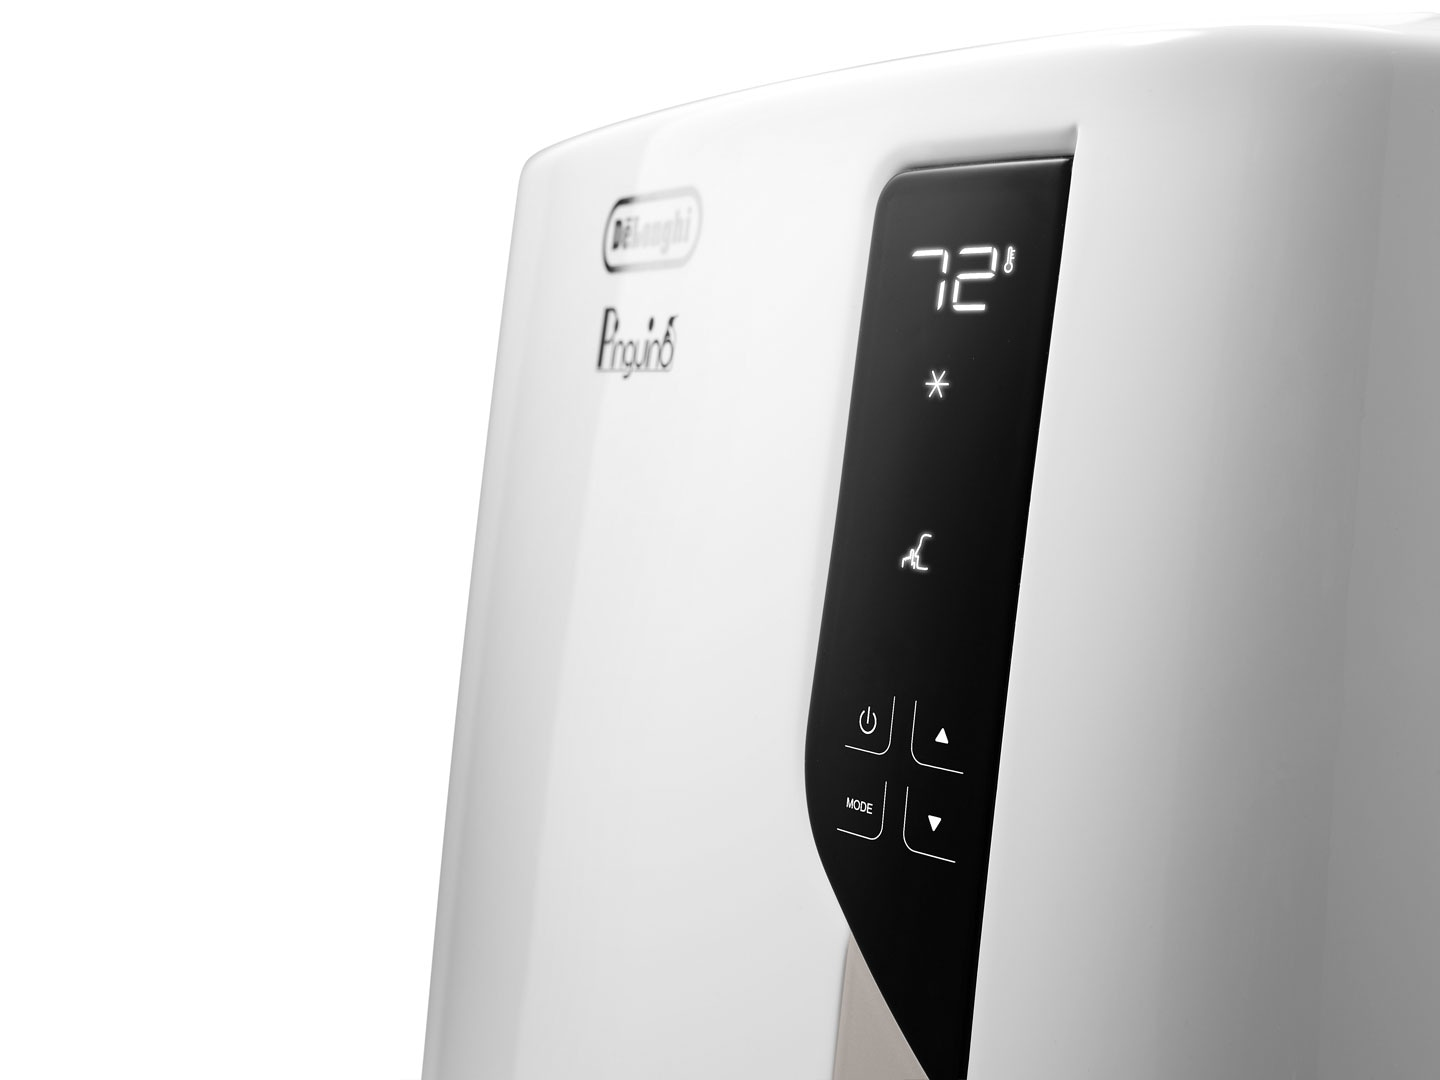 Pinguino Portable Air Conditioner with Smart WiFi & Heat, White -  - PACEL276HGRFK